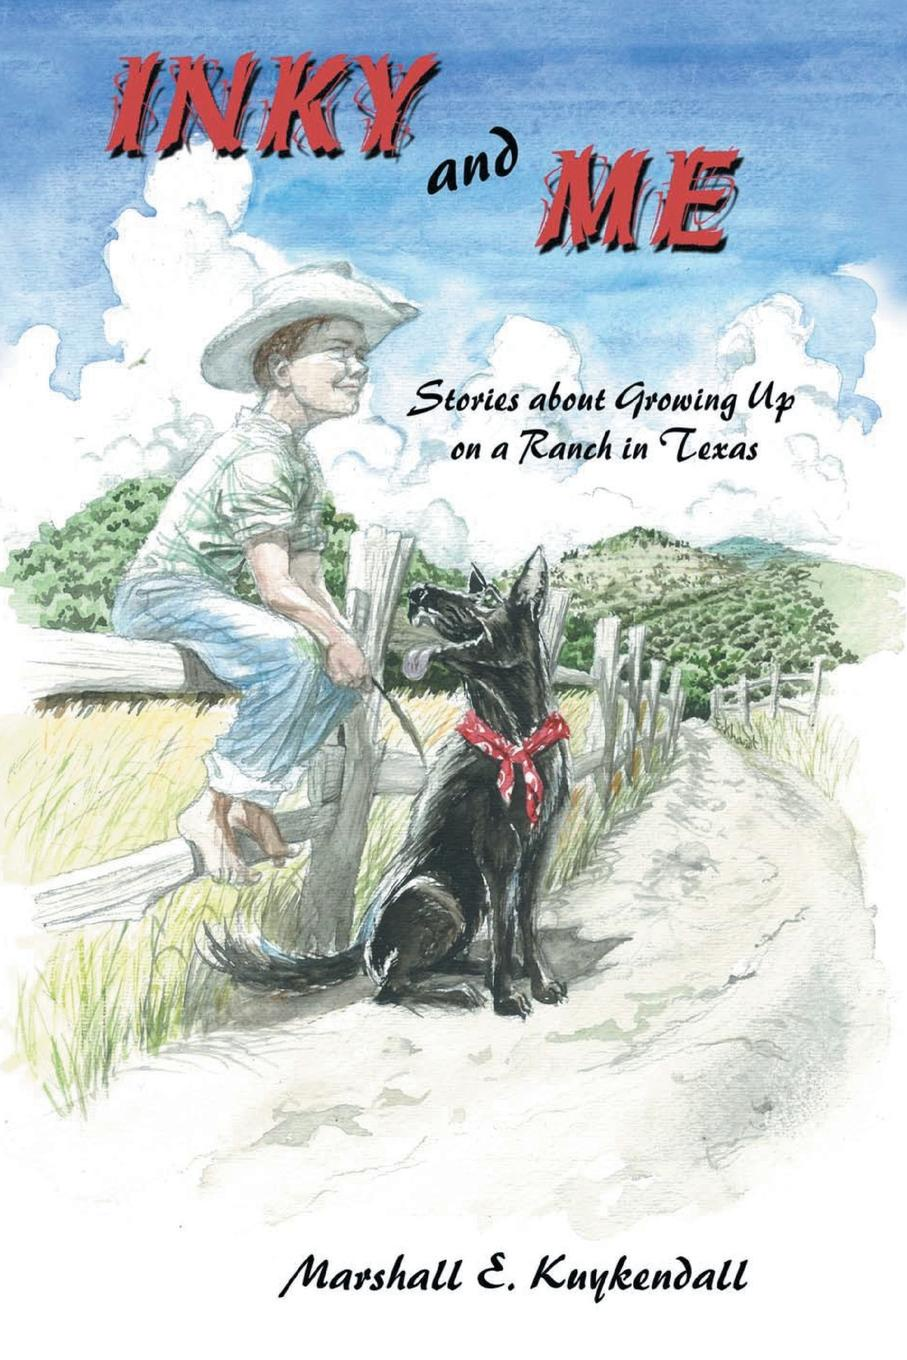 Marshall Kuykendall Inky and Me. Stories about Growing Up on a Ranch in Texas about me fish